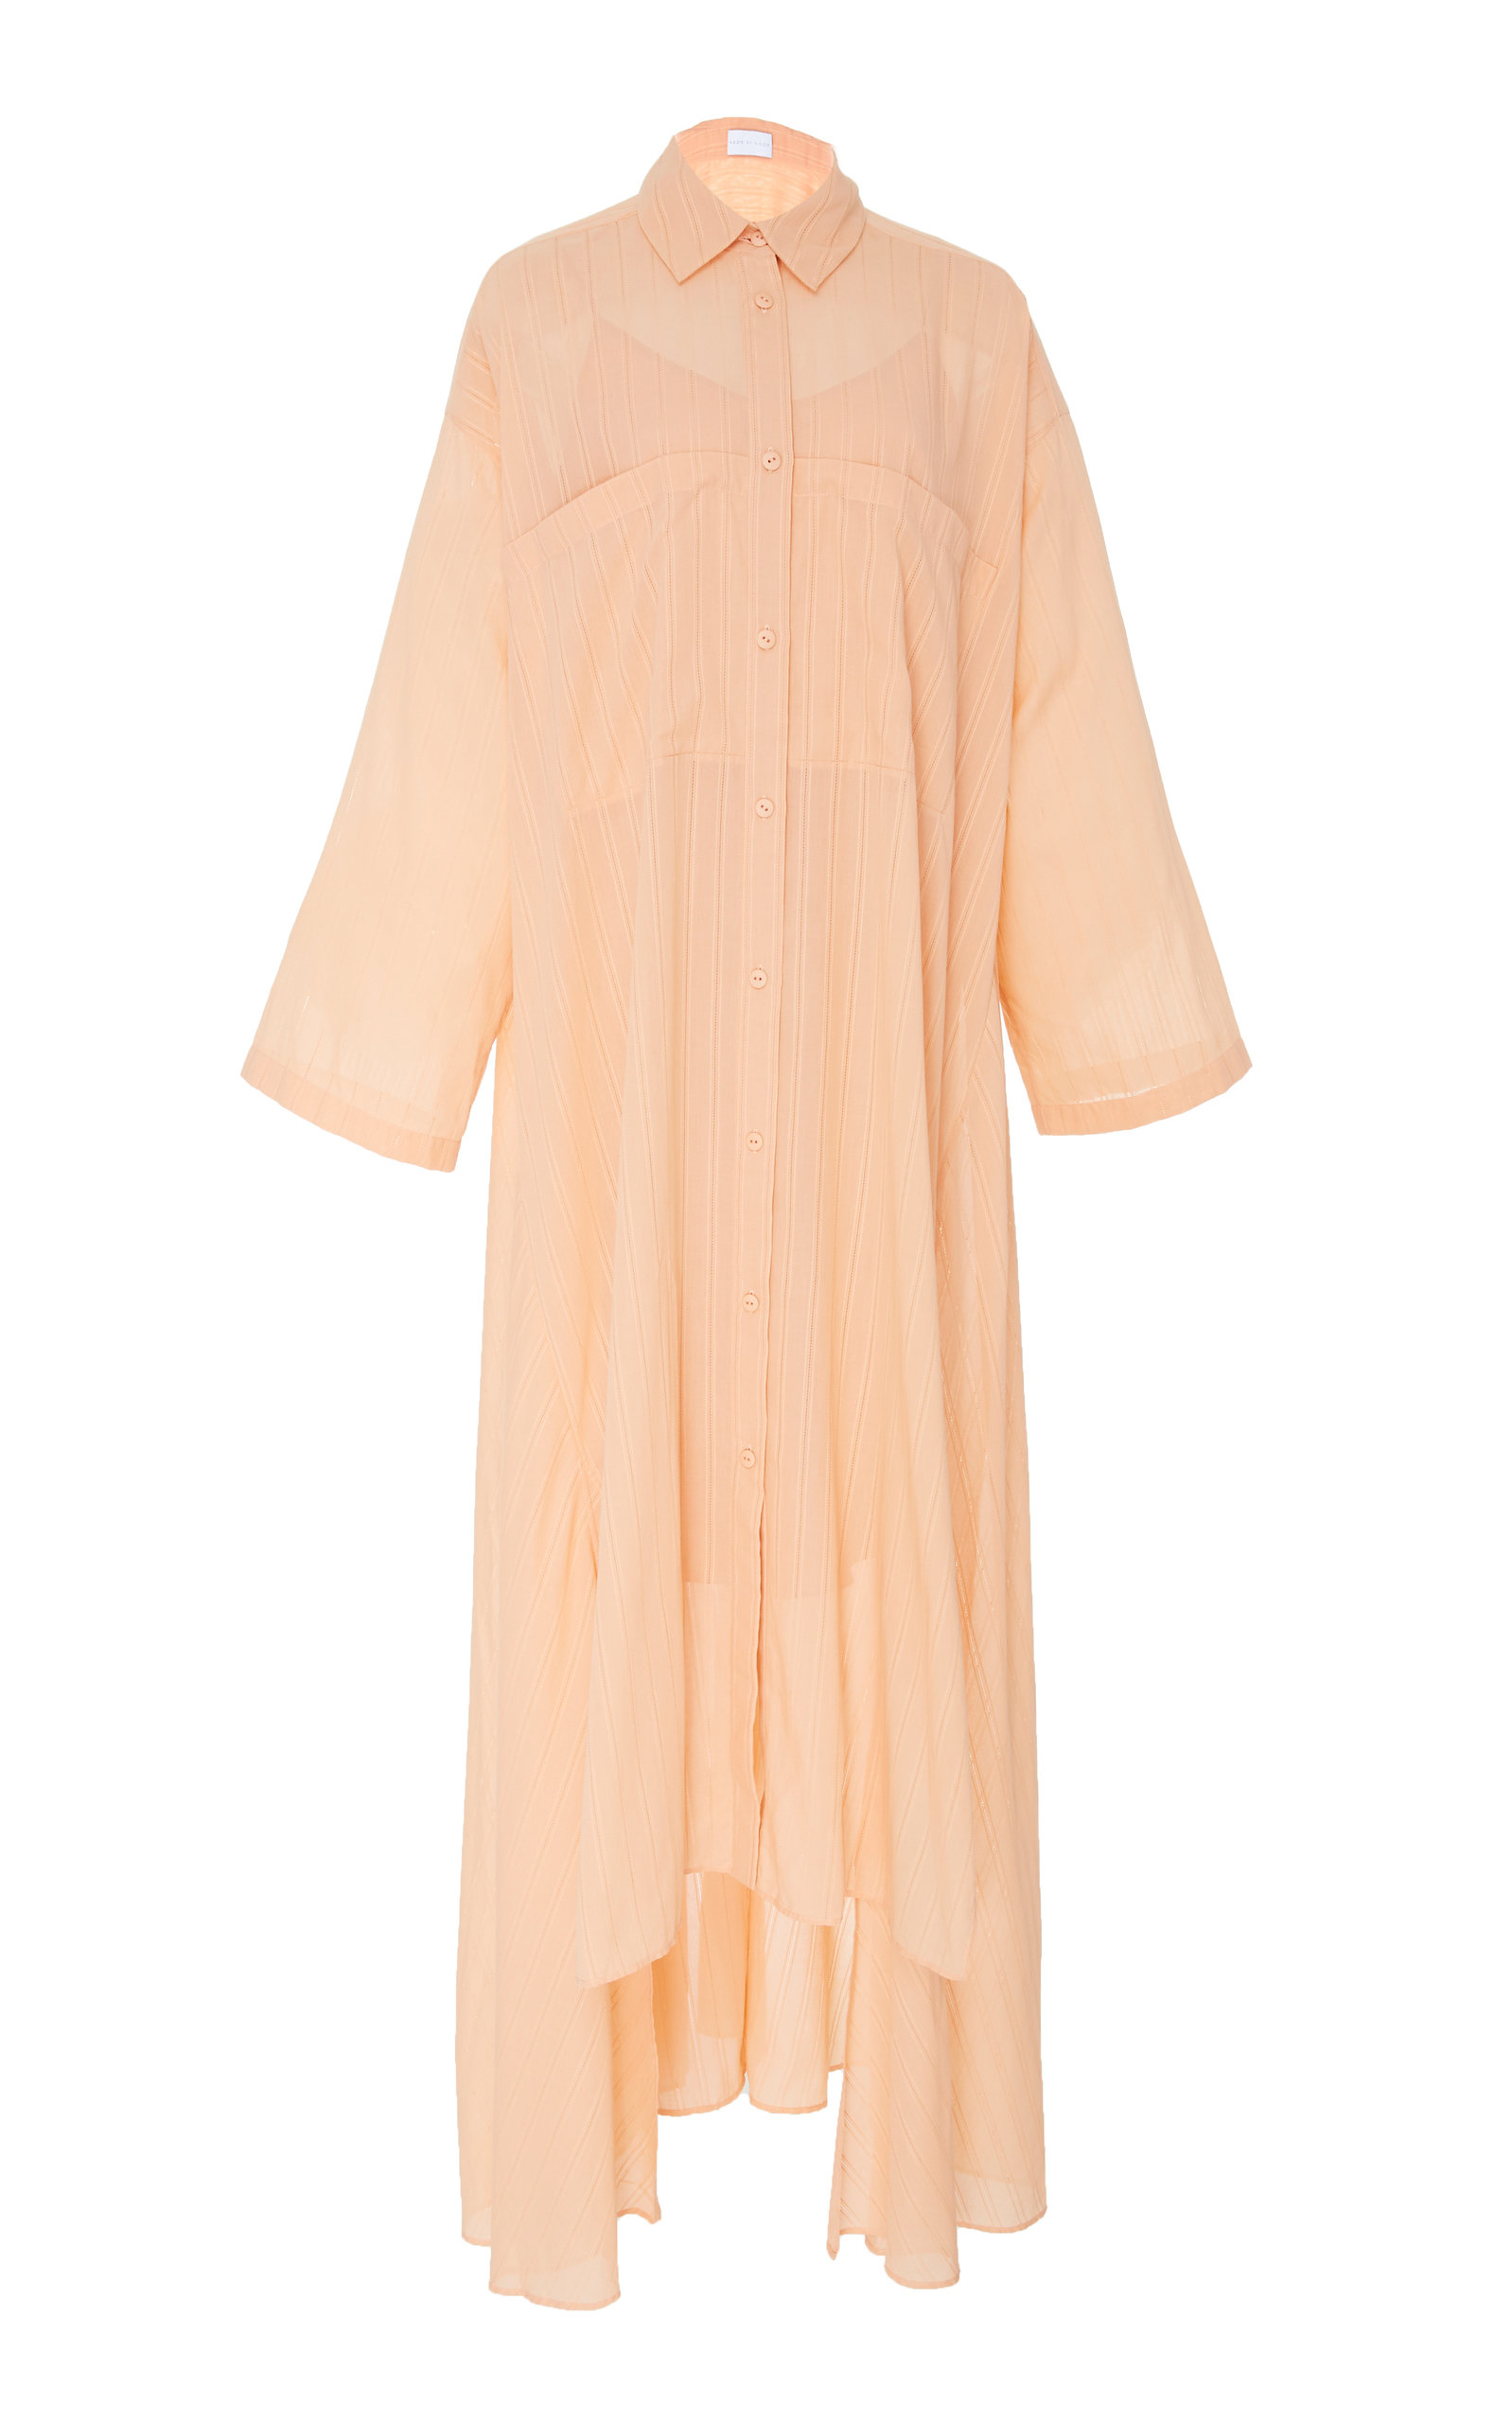 NOON BY NOOR BECK COTTON MAXI DRESS